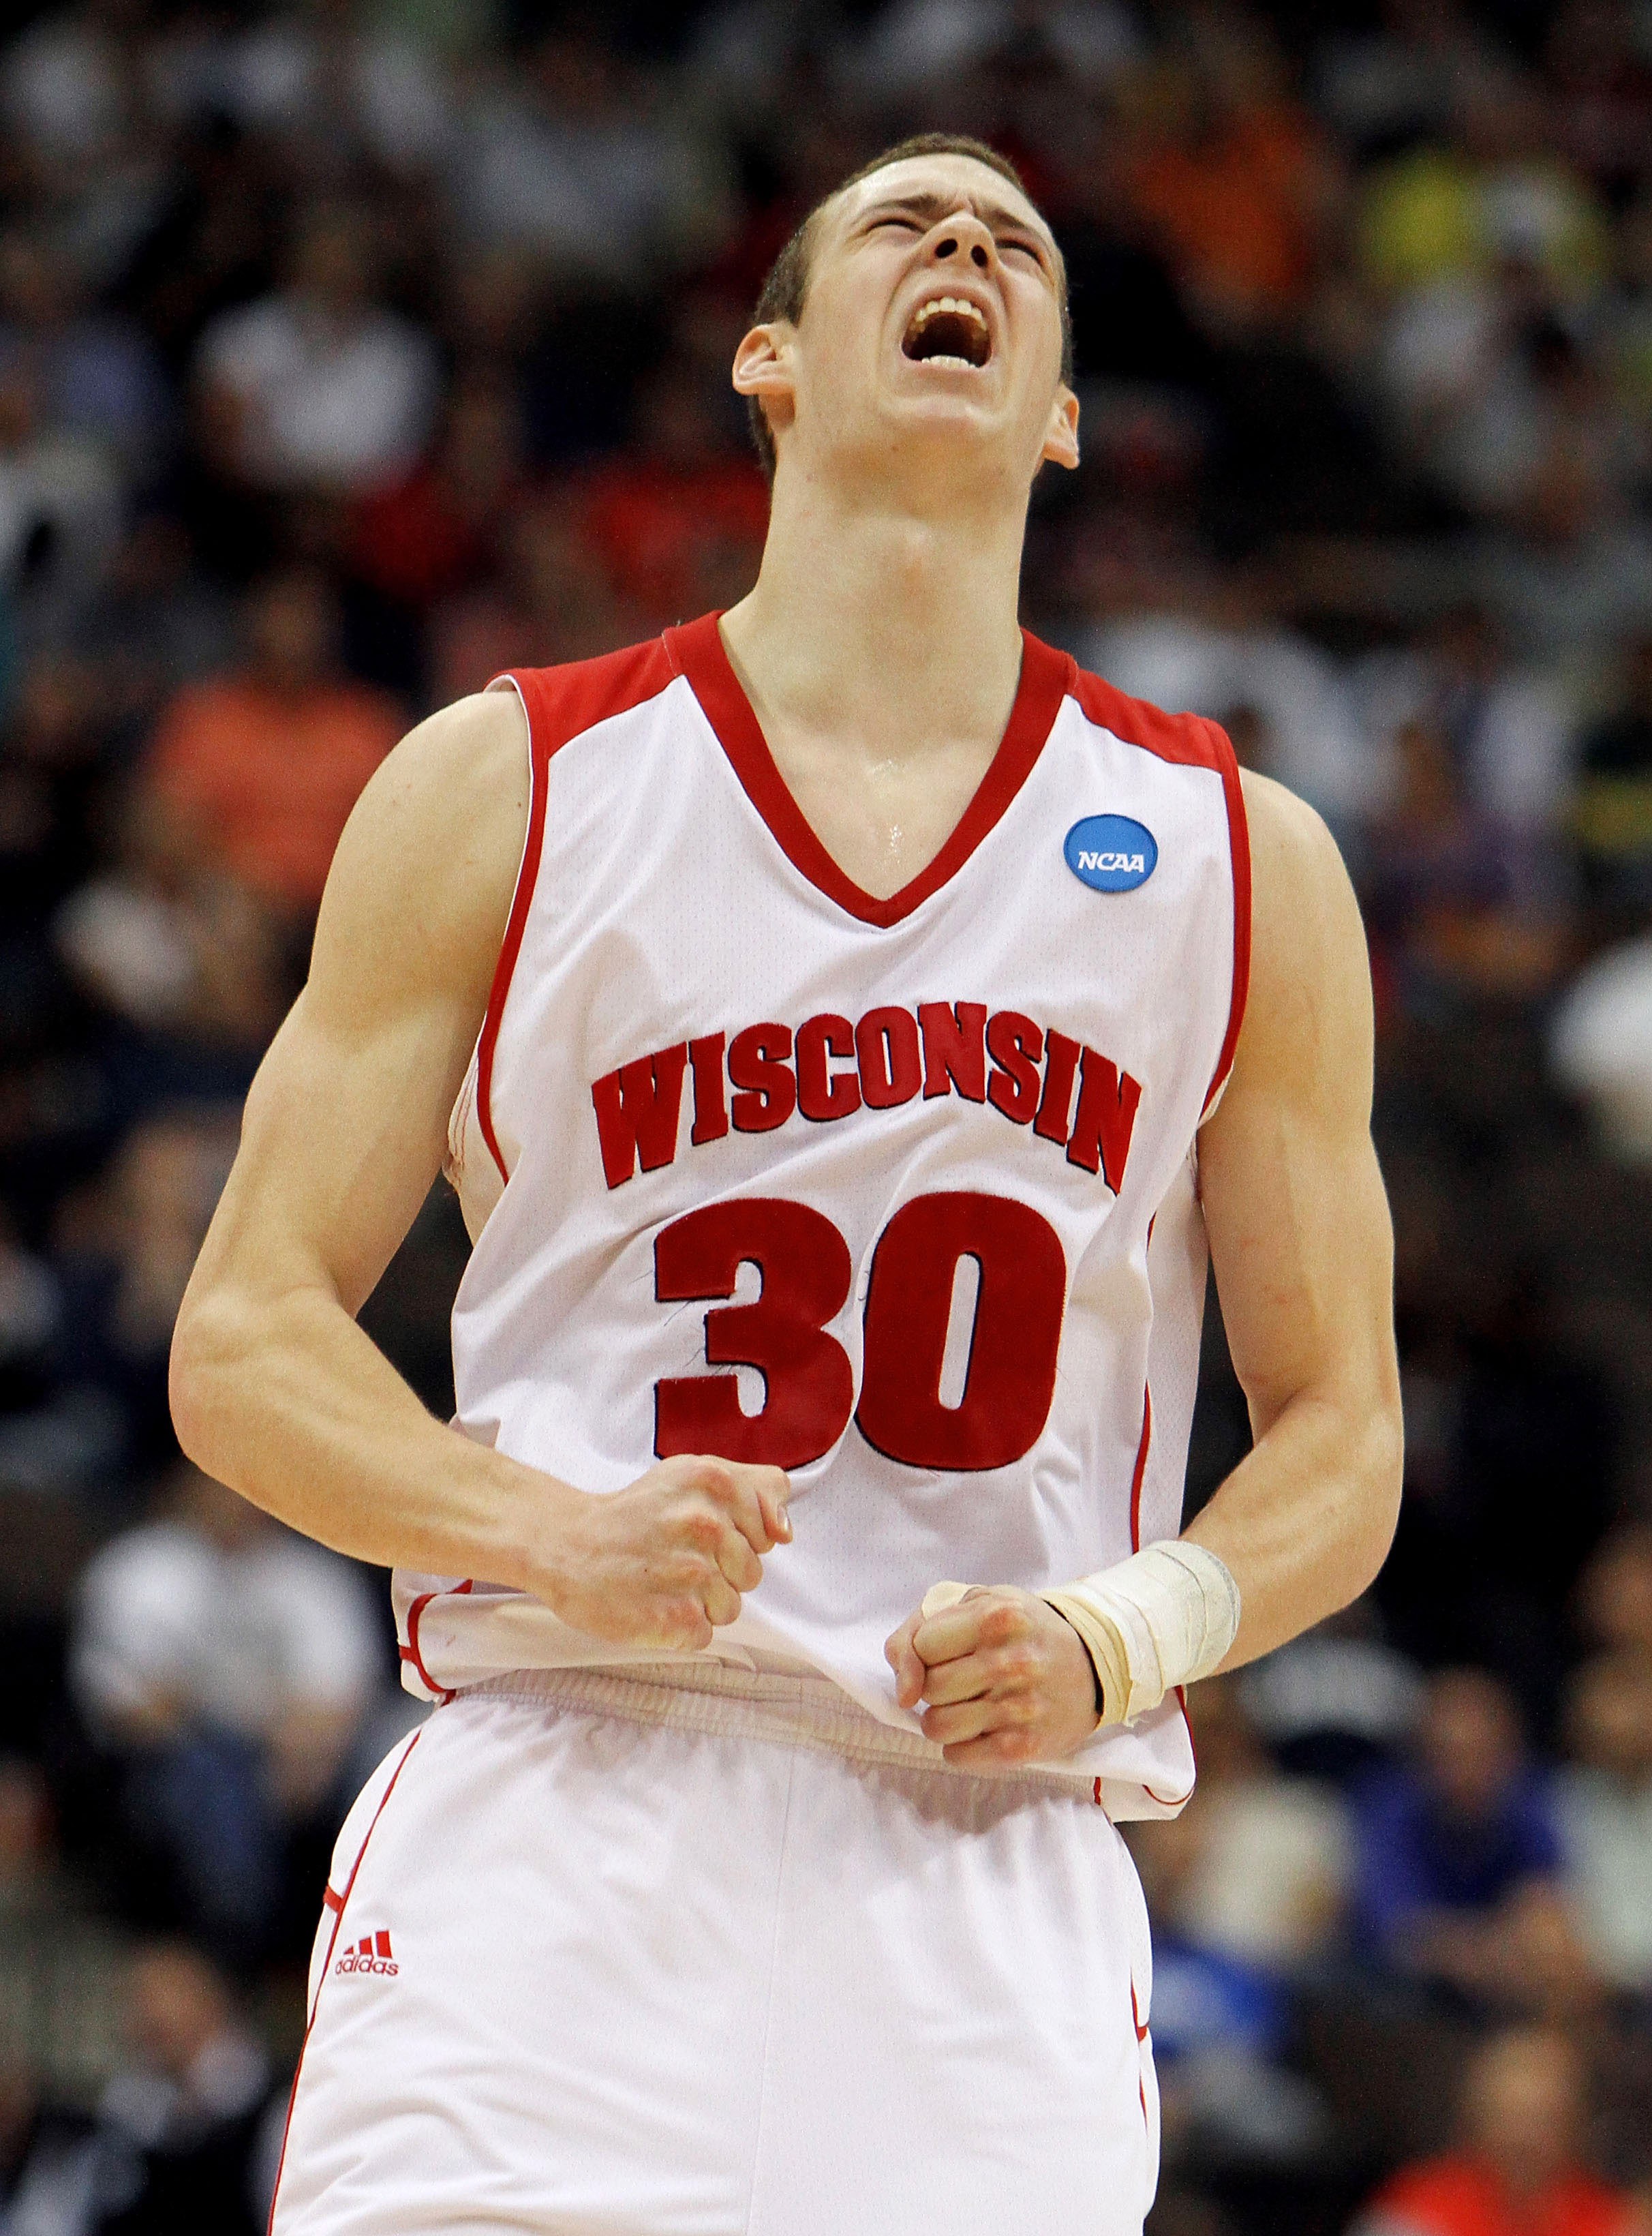 JACKSONVILLE, FL - MARCH 19:  Jon Leuer #30 of the Wisconsin Badgers celebrates after hitting a shot in the second half against the Wofford Terriers during the first round of the 2010 NCAA men's basketball tournament at Jacksonville Veteran's Memorial Are